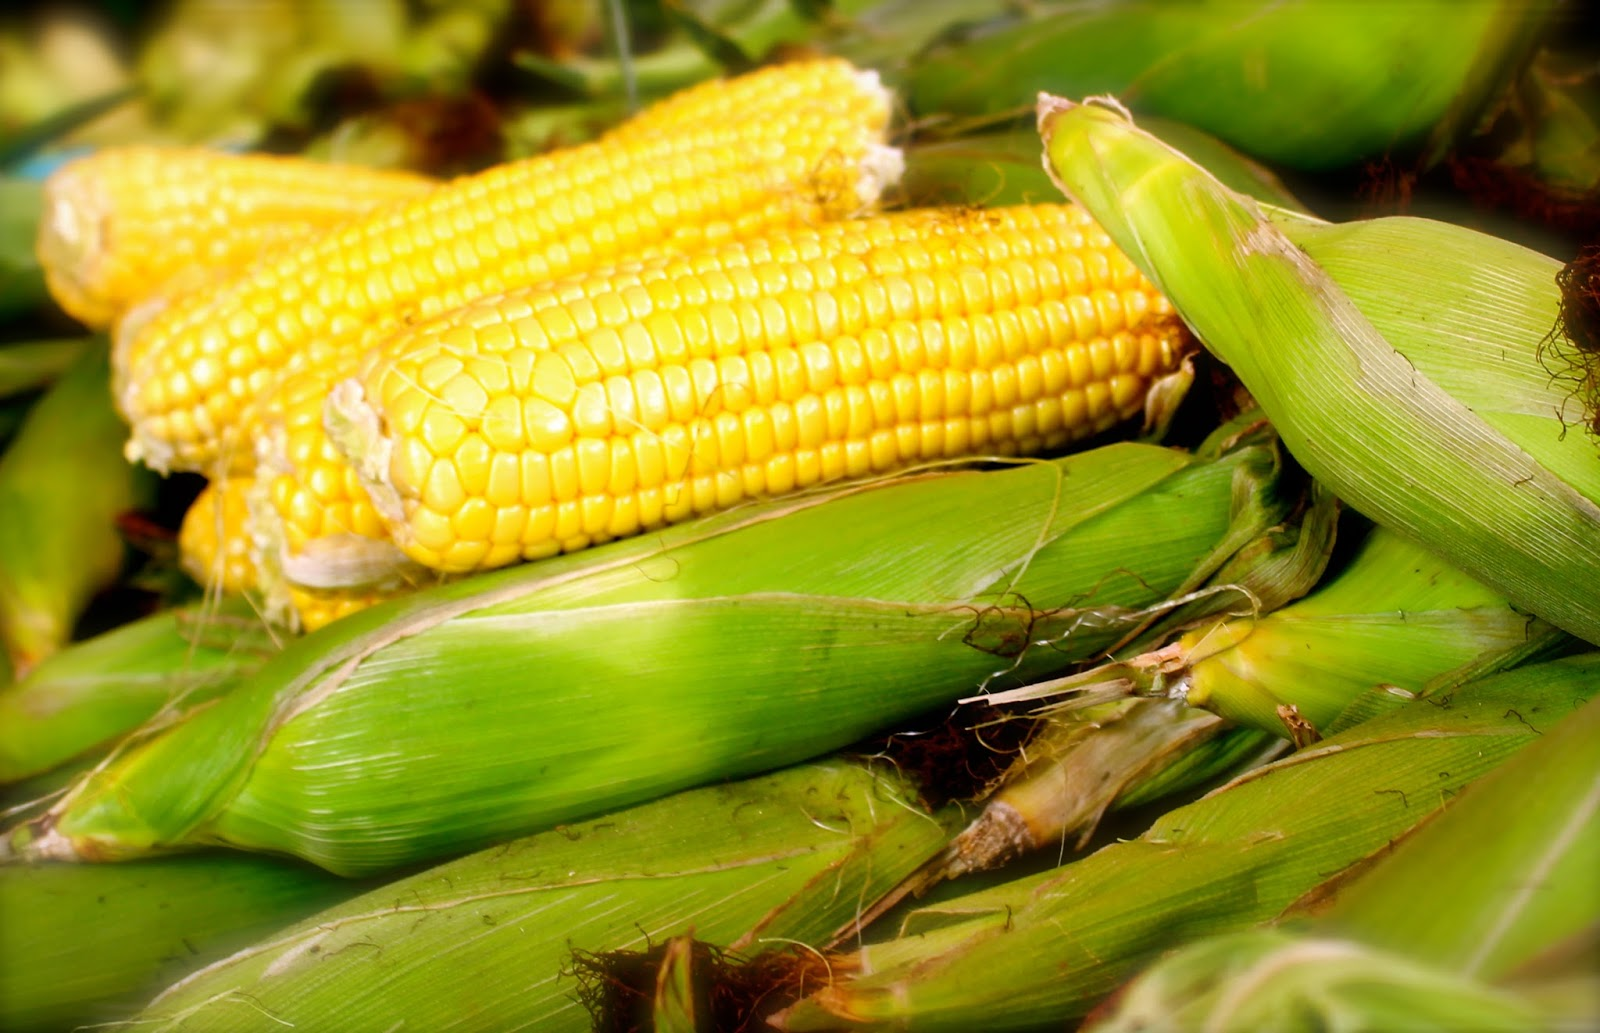 corn cobs Corn cobs, wholesale various high quality corn cobs products from global corn cobs suppliers and corn cobs factory,importer,exporter at alibabacom.